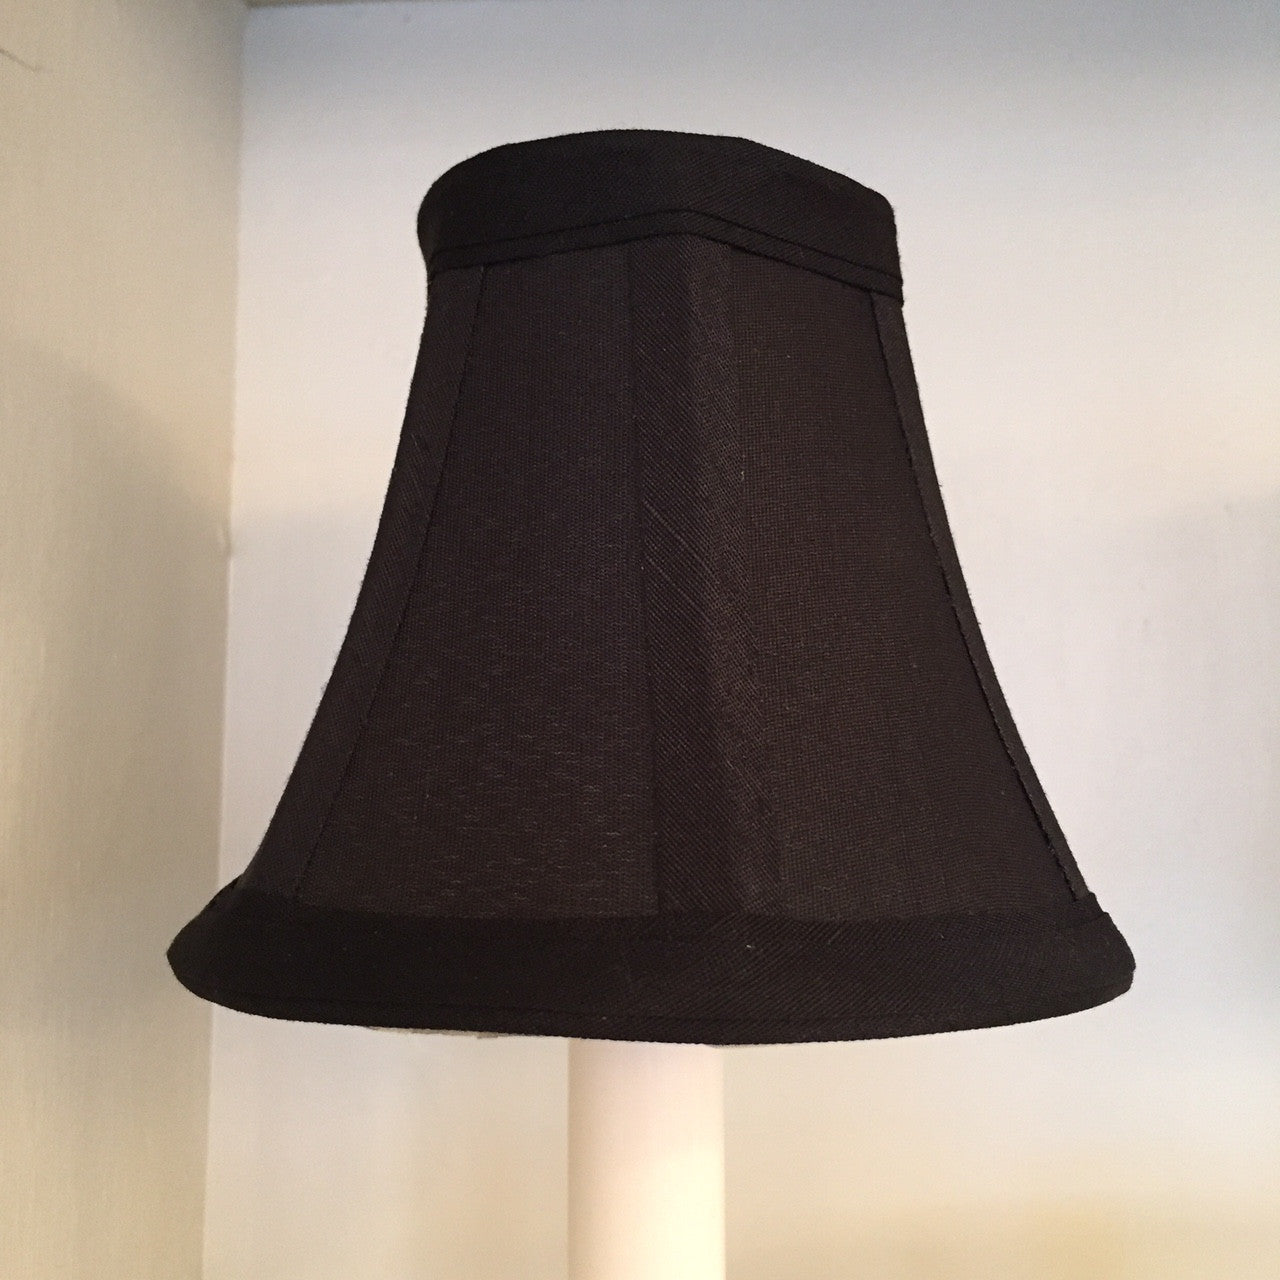 Black Clip On Chandelier Shade